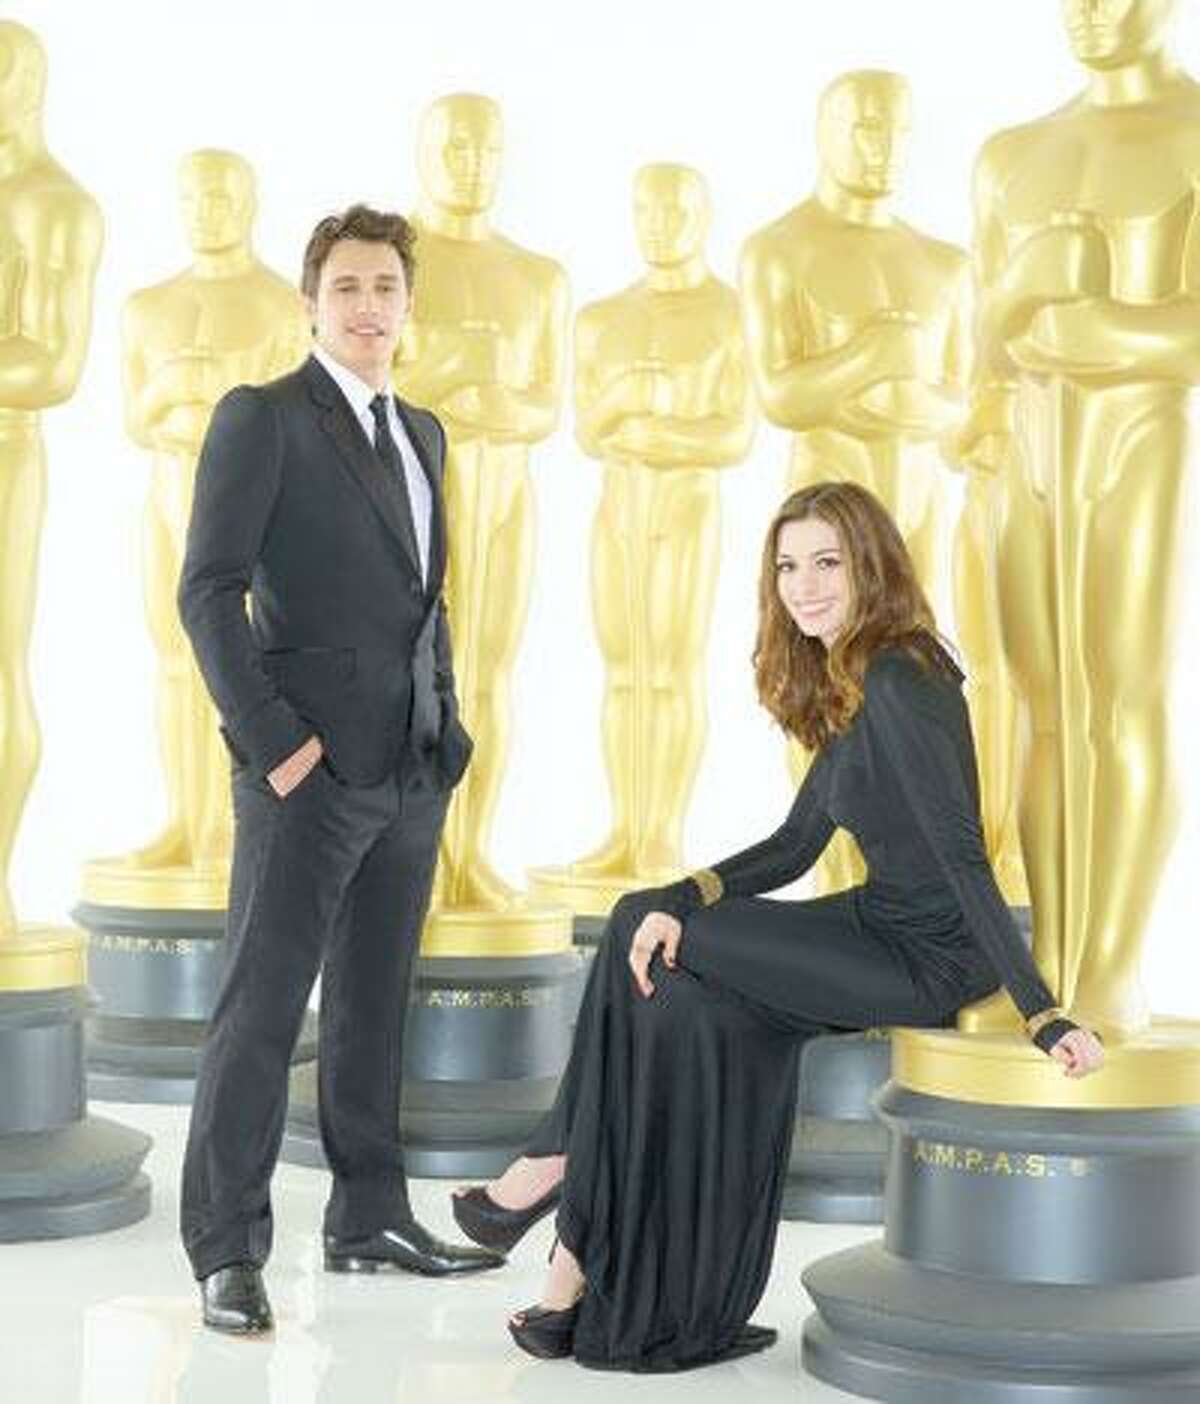 Oscar co-hosts James Franco, who spends some time in New Haven these days, and Anne Hathaway, who, if she could stand up to Meryl Streep (